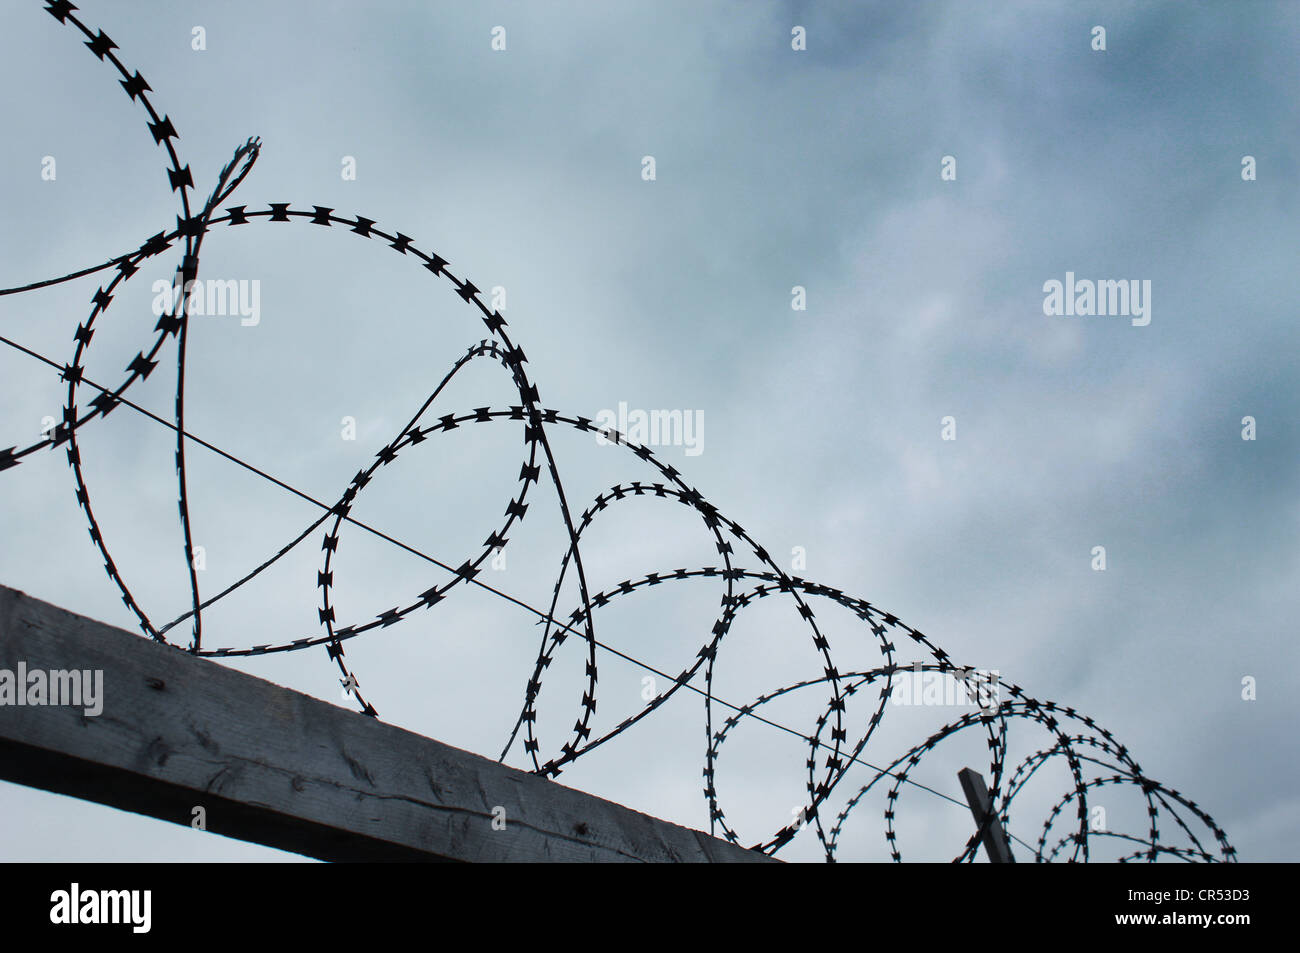 Barbed Wire Fence against threatening sky - Stock Image